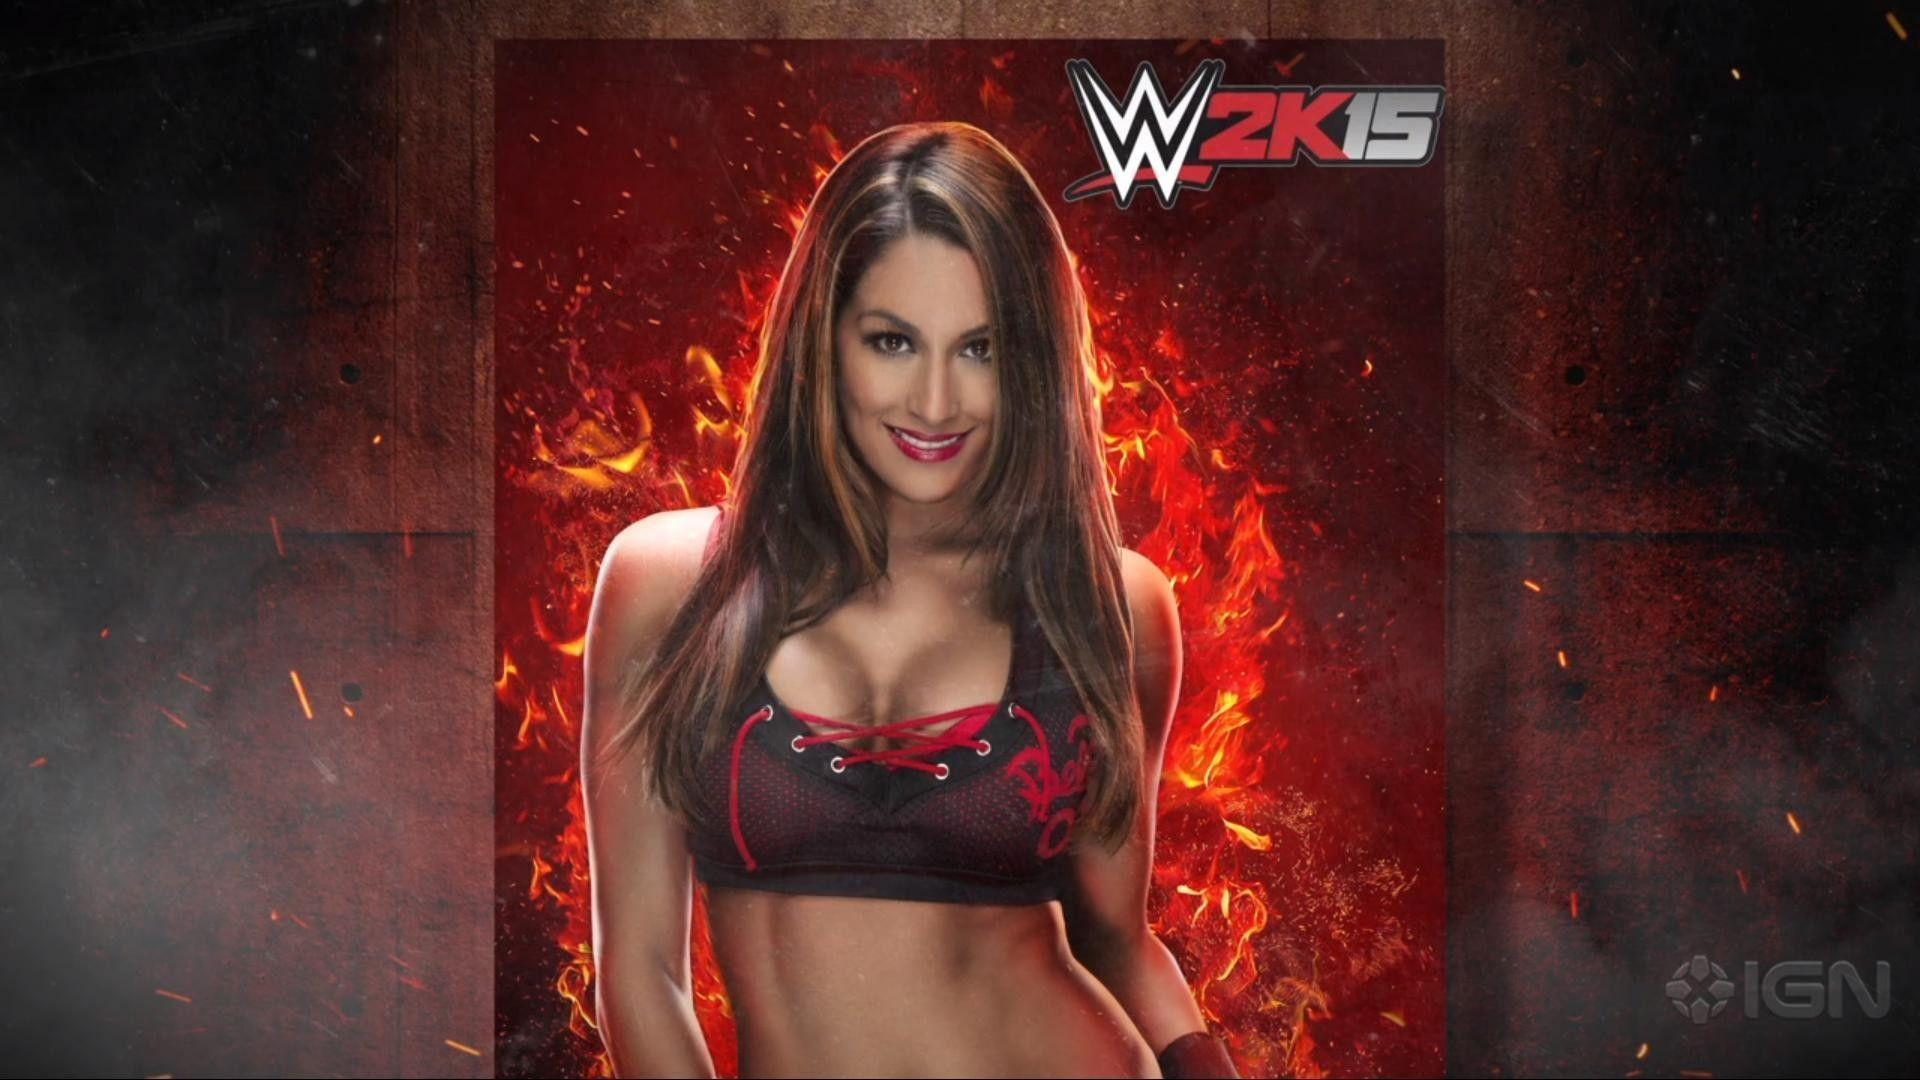 WWE Nikki Bella Wallpaper - Girls HD Wallpapers